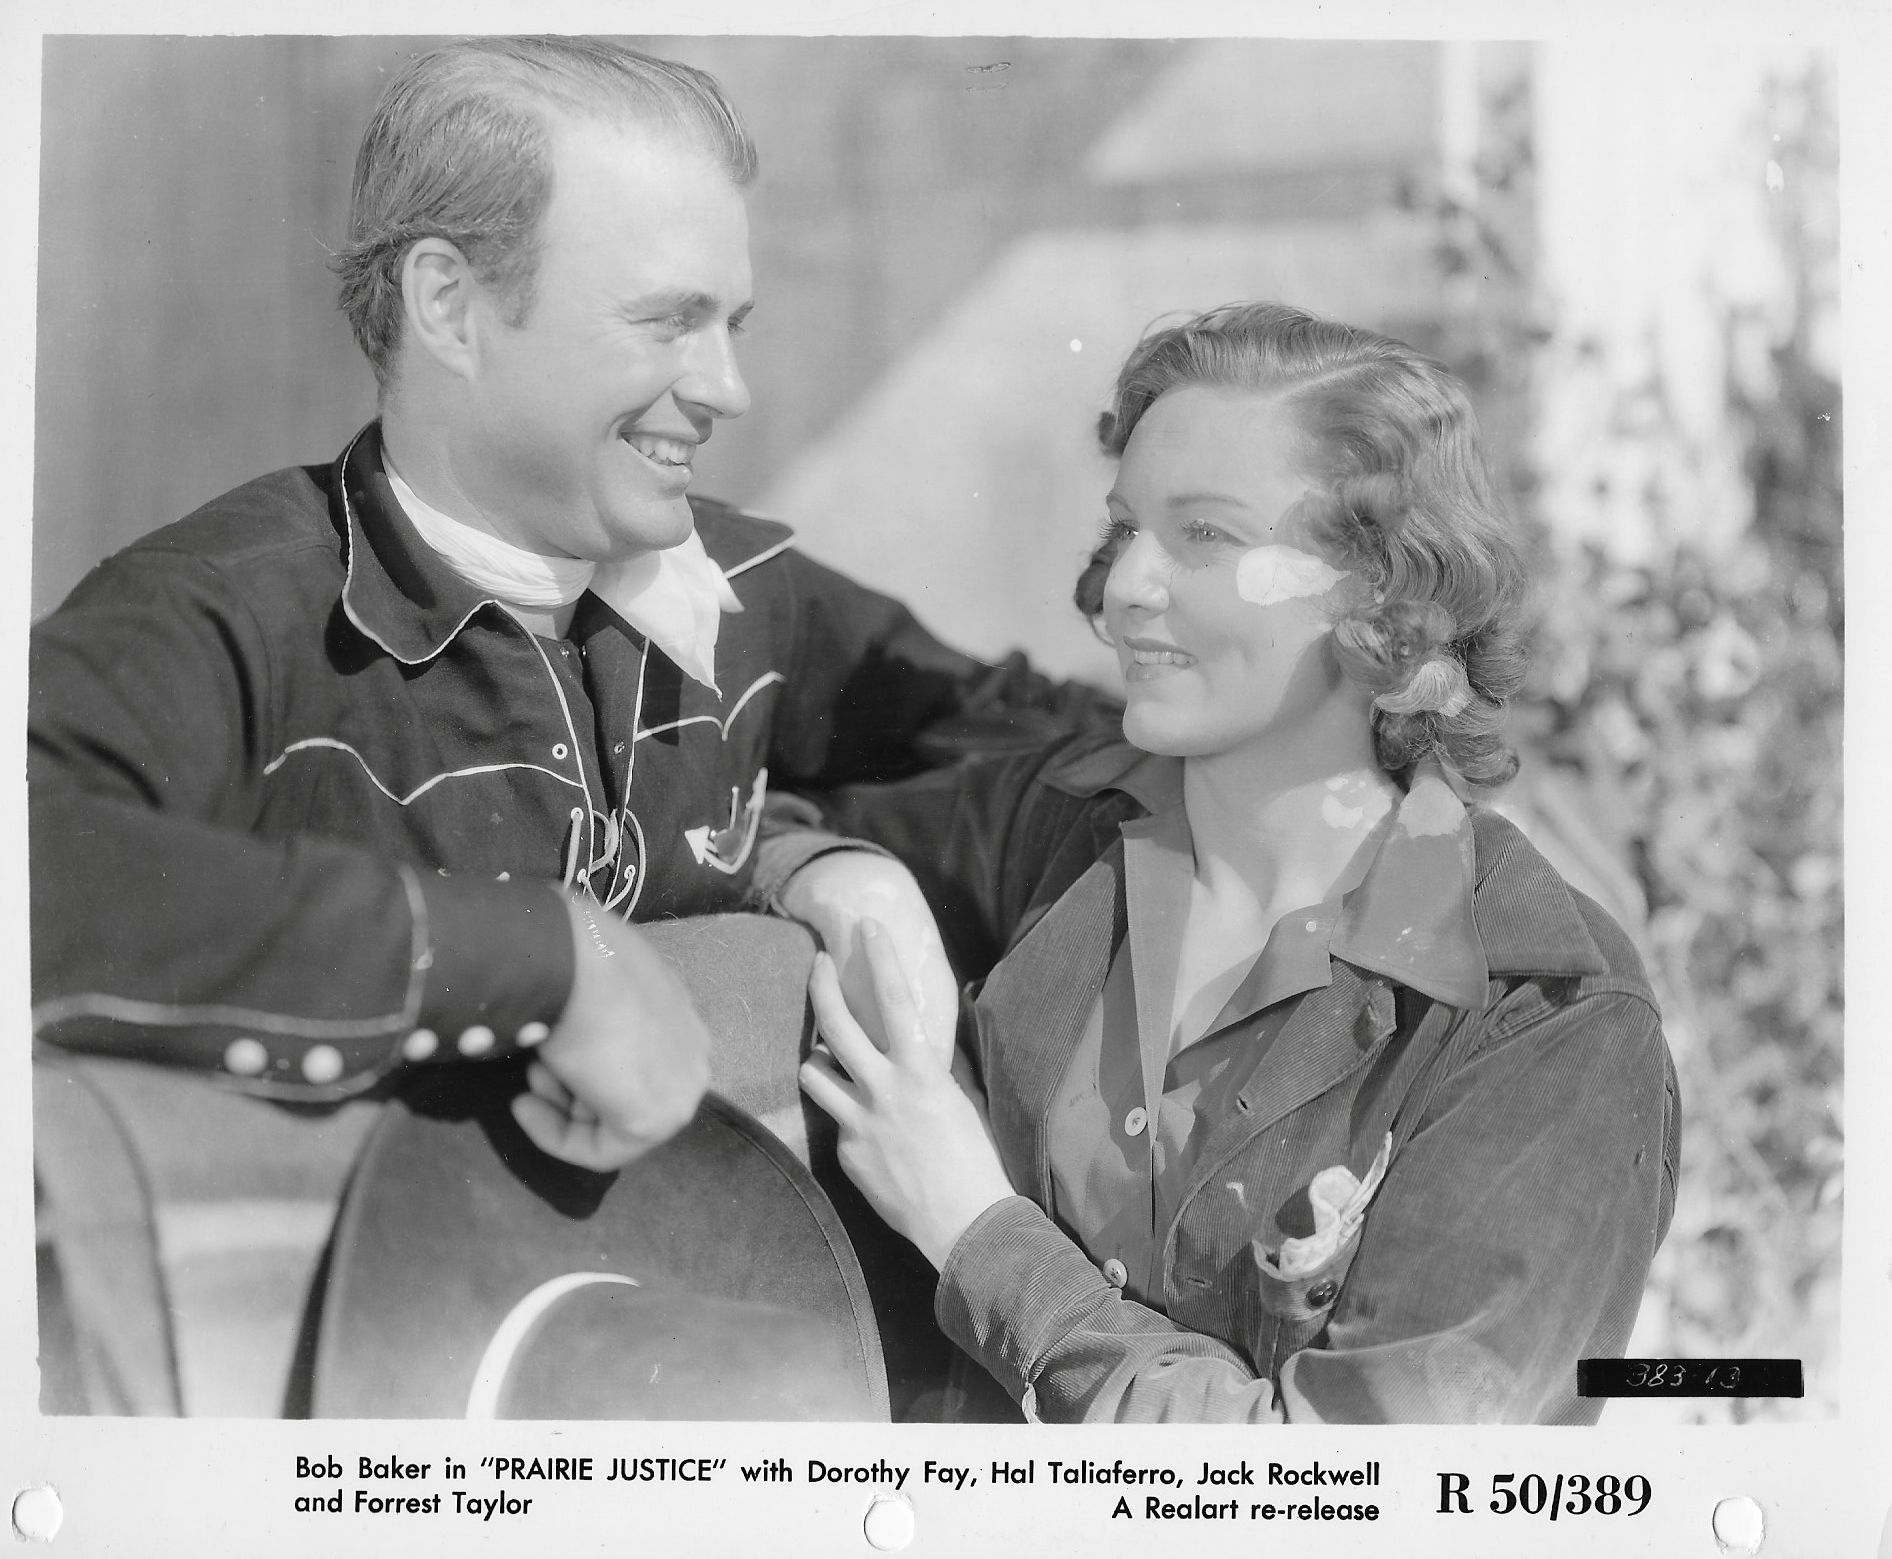 Bob Baker and Dorothy Fay in Prairie Justice (1938)